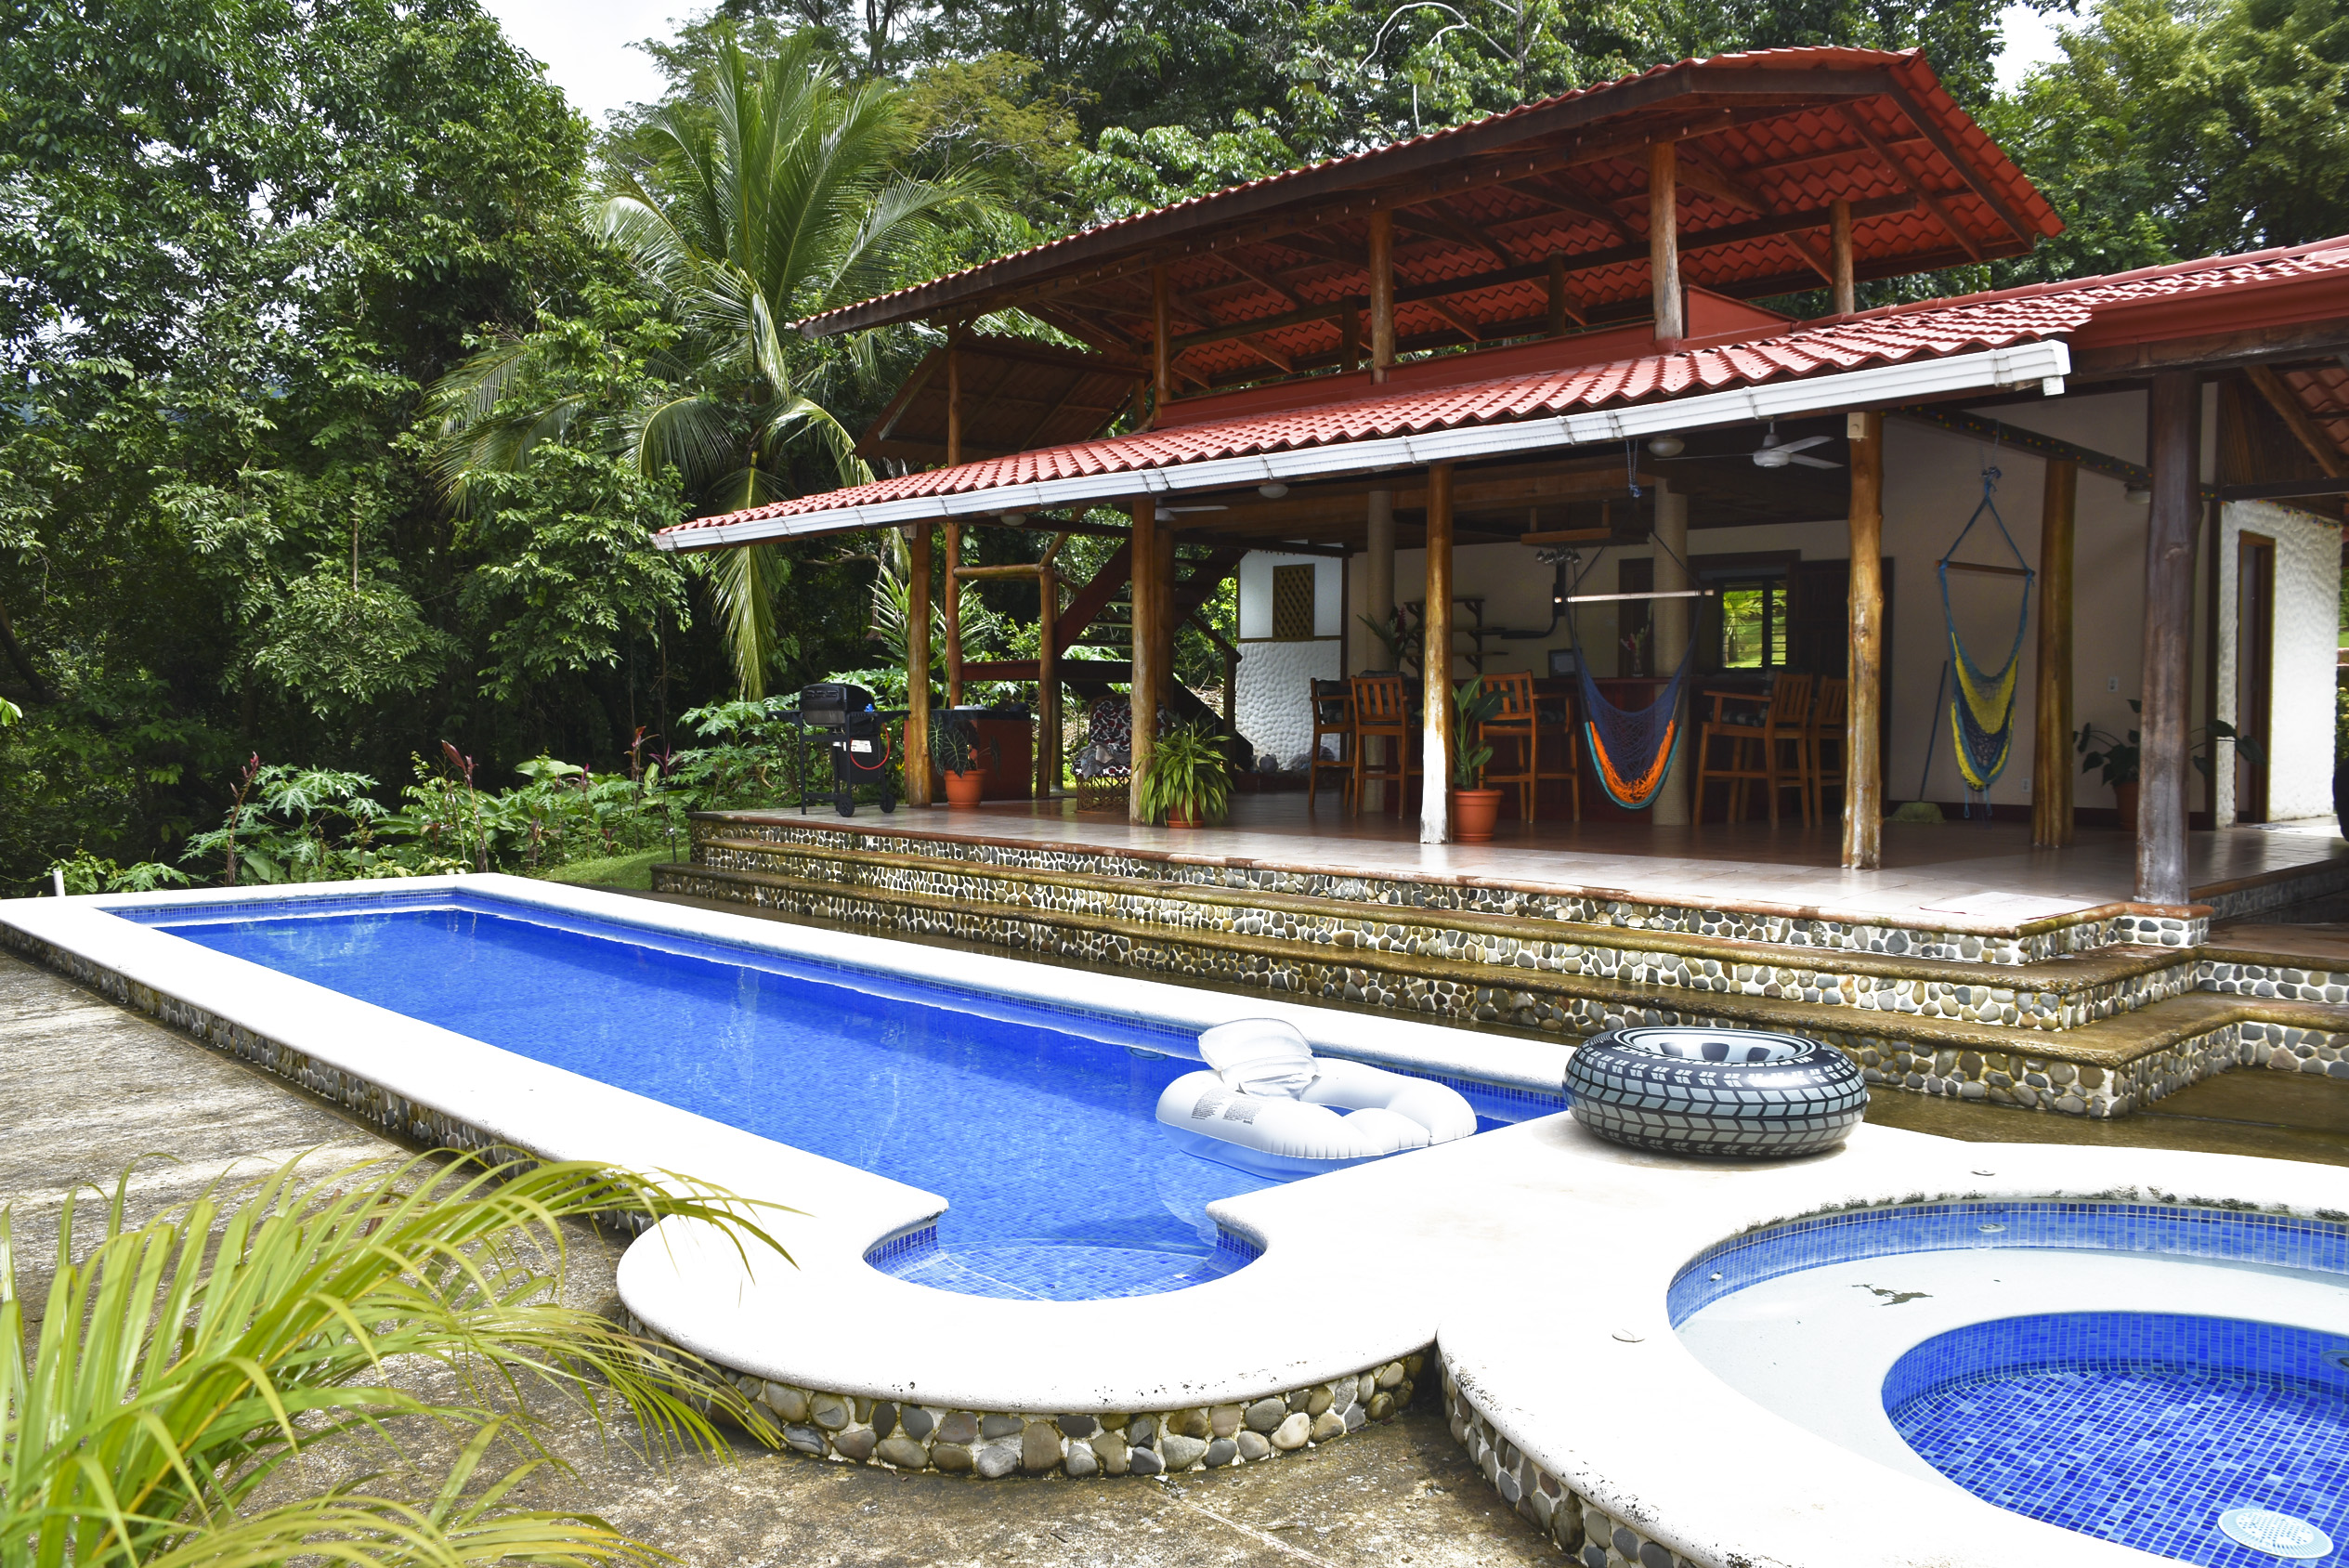 Jacuzzi Pool Villa Bandos 6 Acres 4 Bedroom Villa Pool And Jacuzzi Ocean And